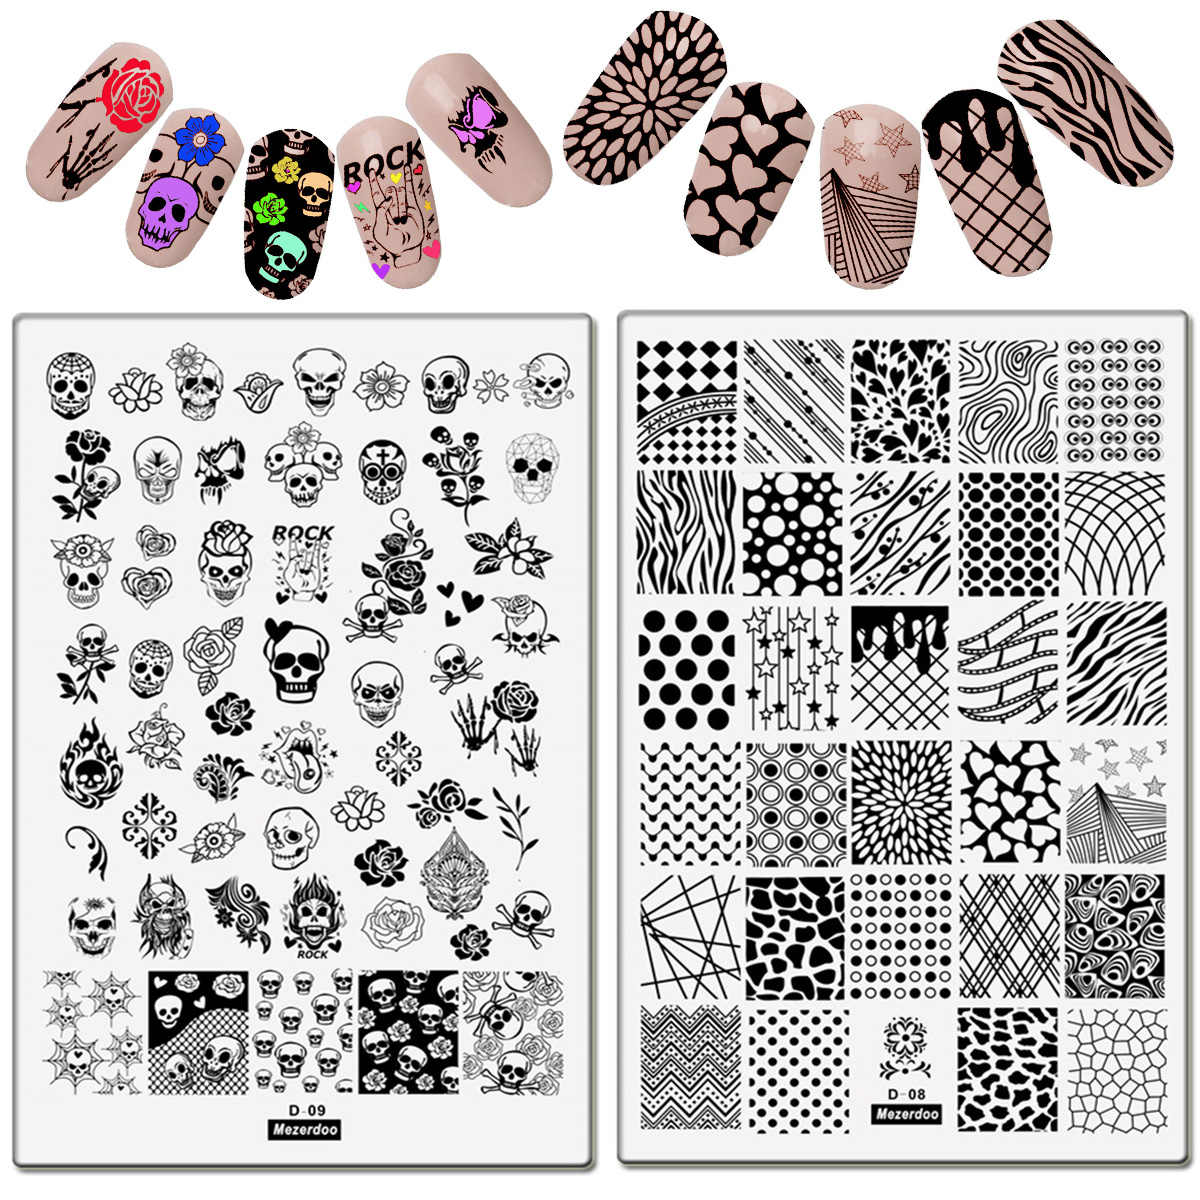 Cute Animals Flower Geometric Image Diy Nail Art Stamping Plates Steel Design Nail Plate Templates Stamps Stencil Collection